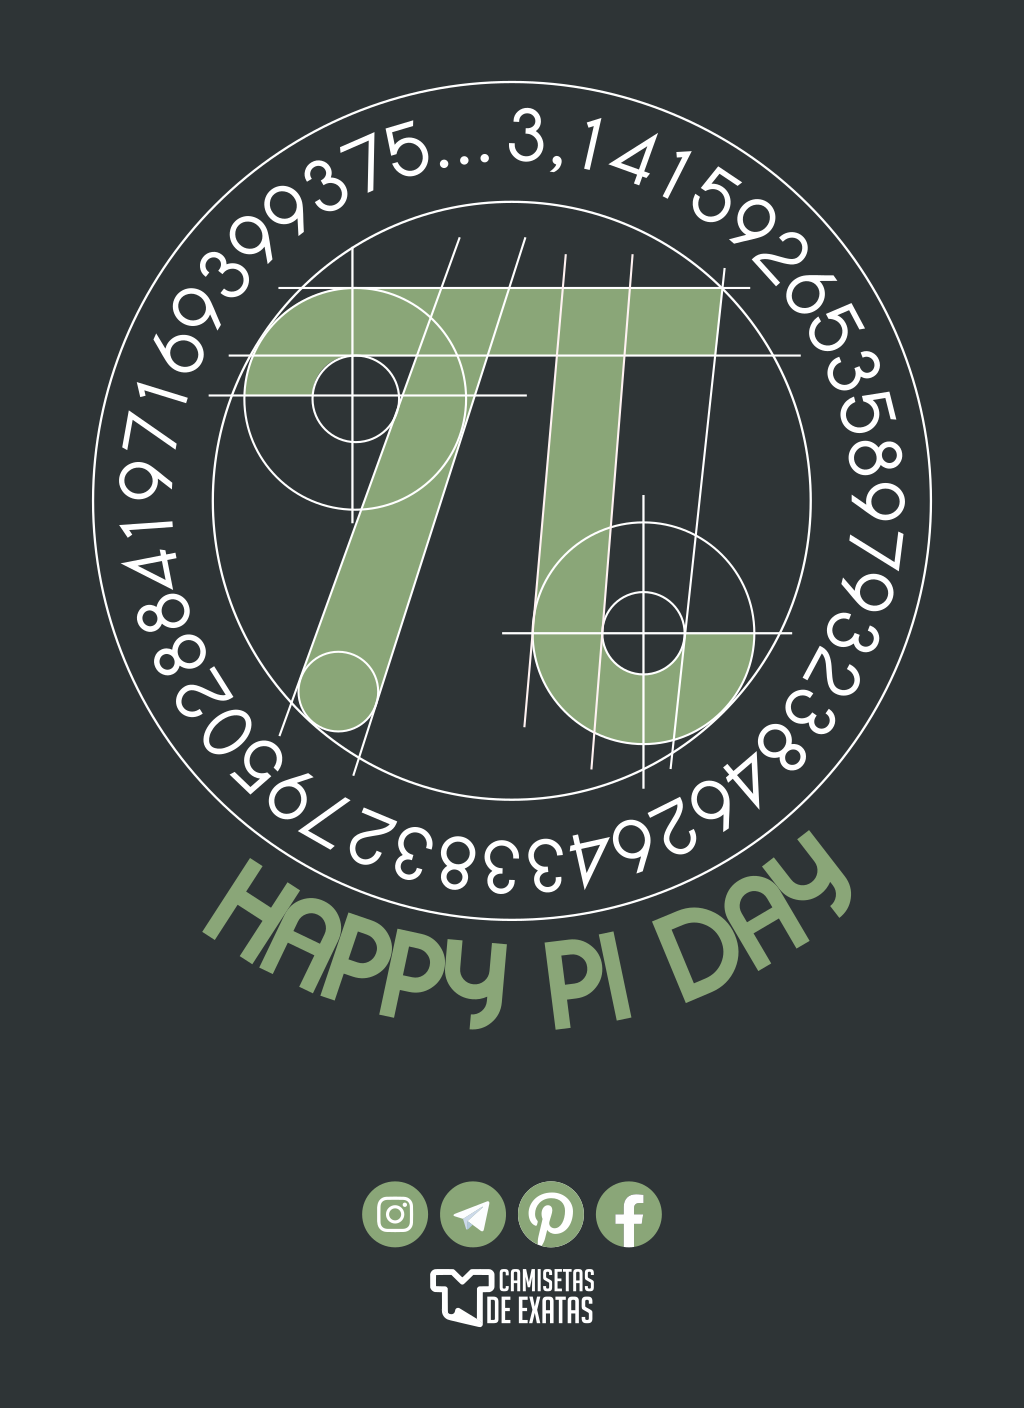 Happy Pi Day 2020 Em 2020 Feliz Dia Do Pi Dia Do Pi Matematica